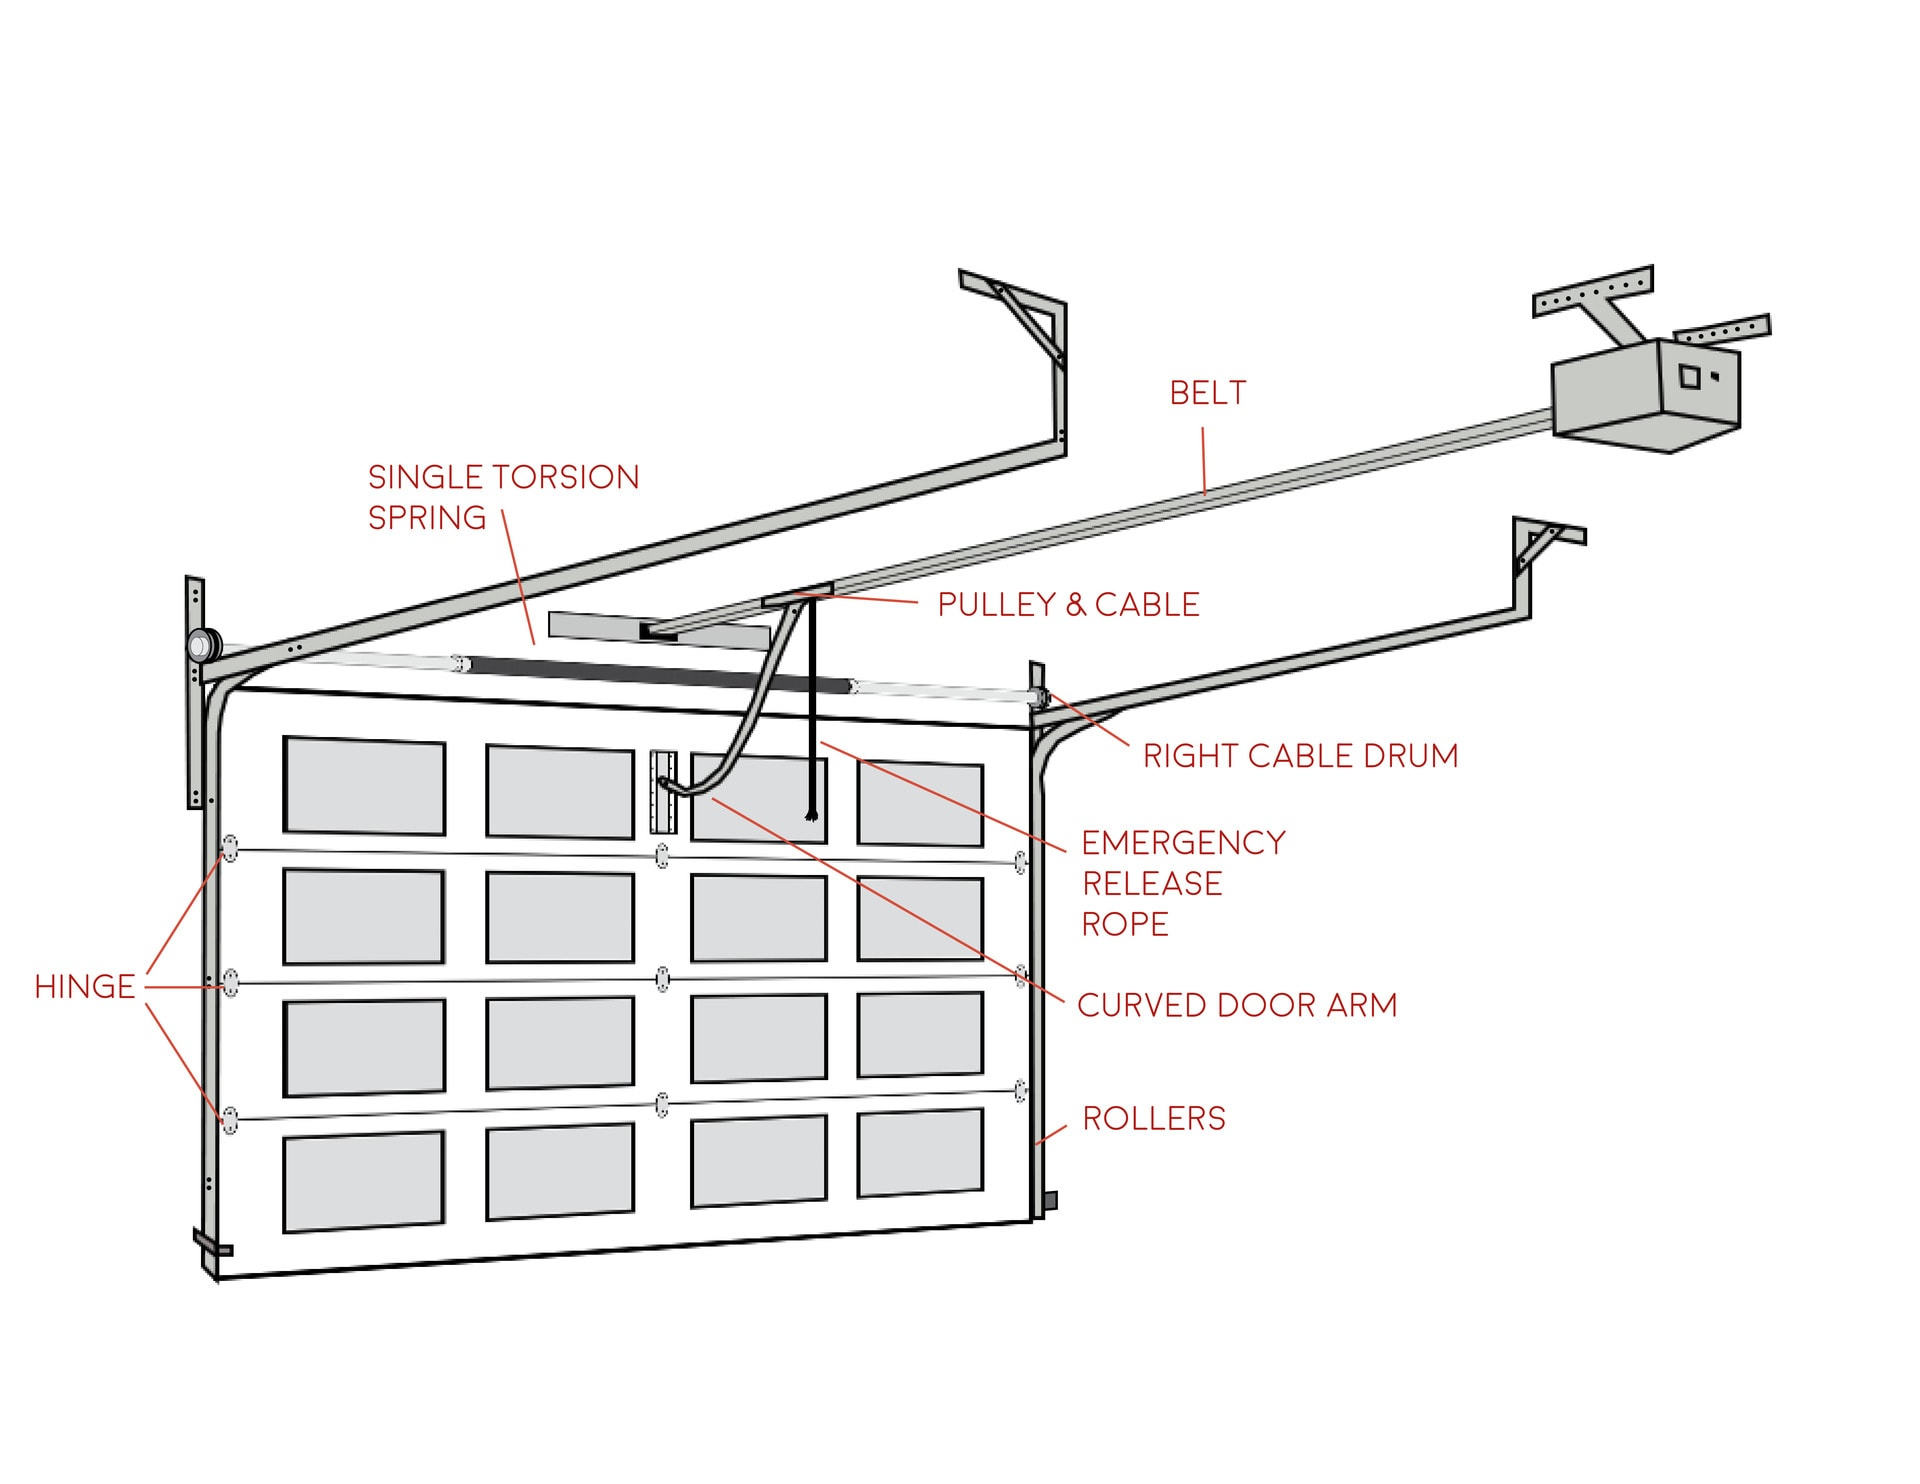 hight resolution of garage door schematic wiring diagram user wiring diagram garage door motor wiring diagram for garage door